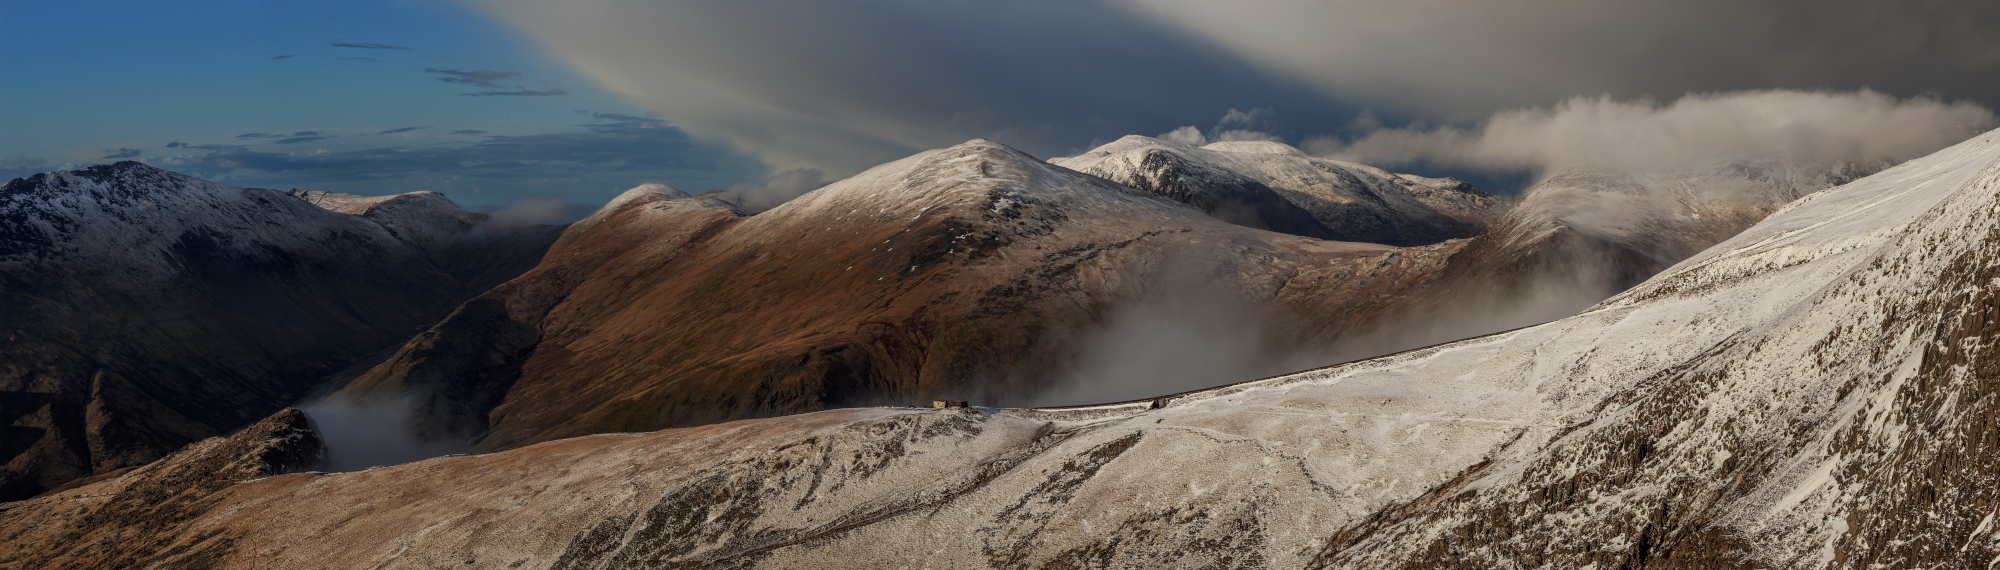 Landscape photography /Winter Storm over Glyders